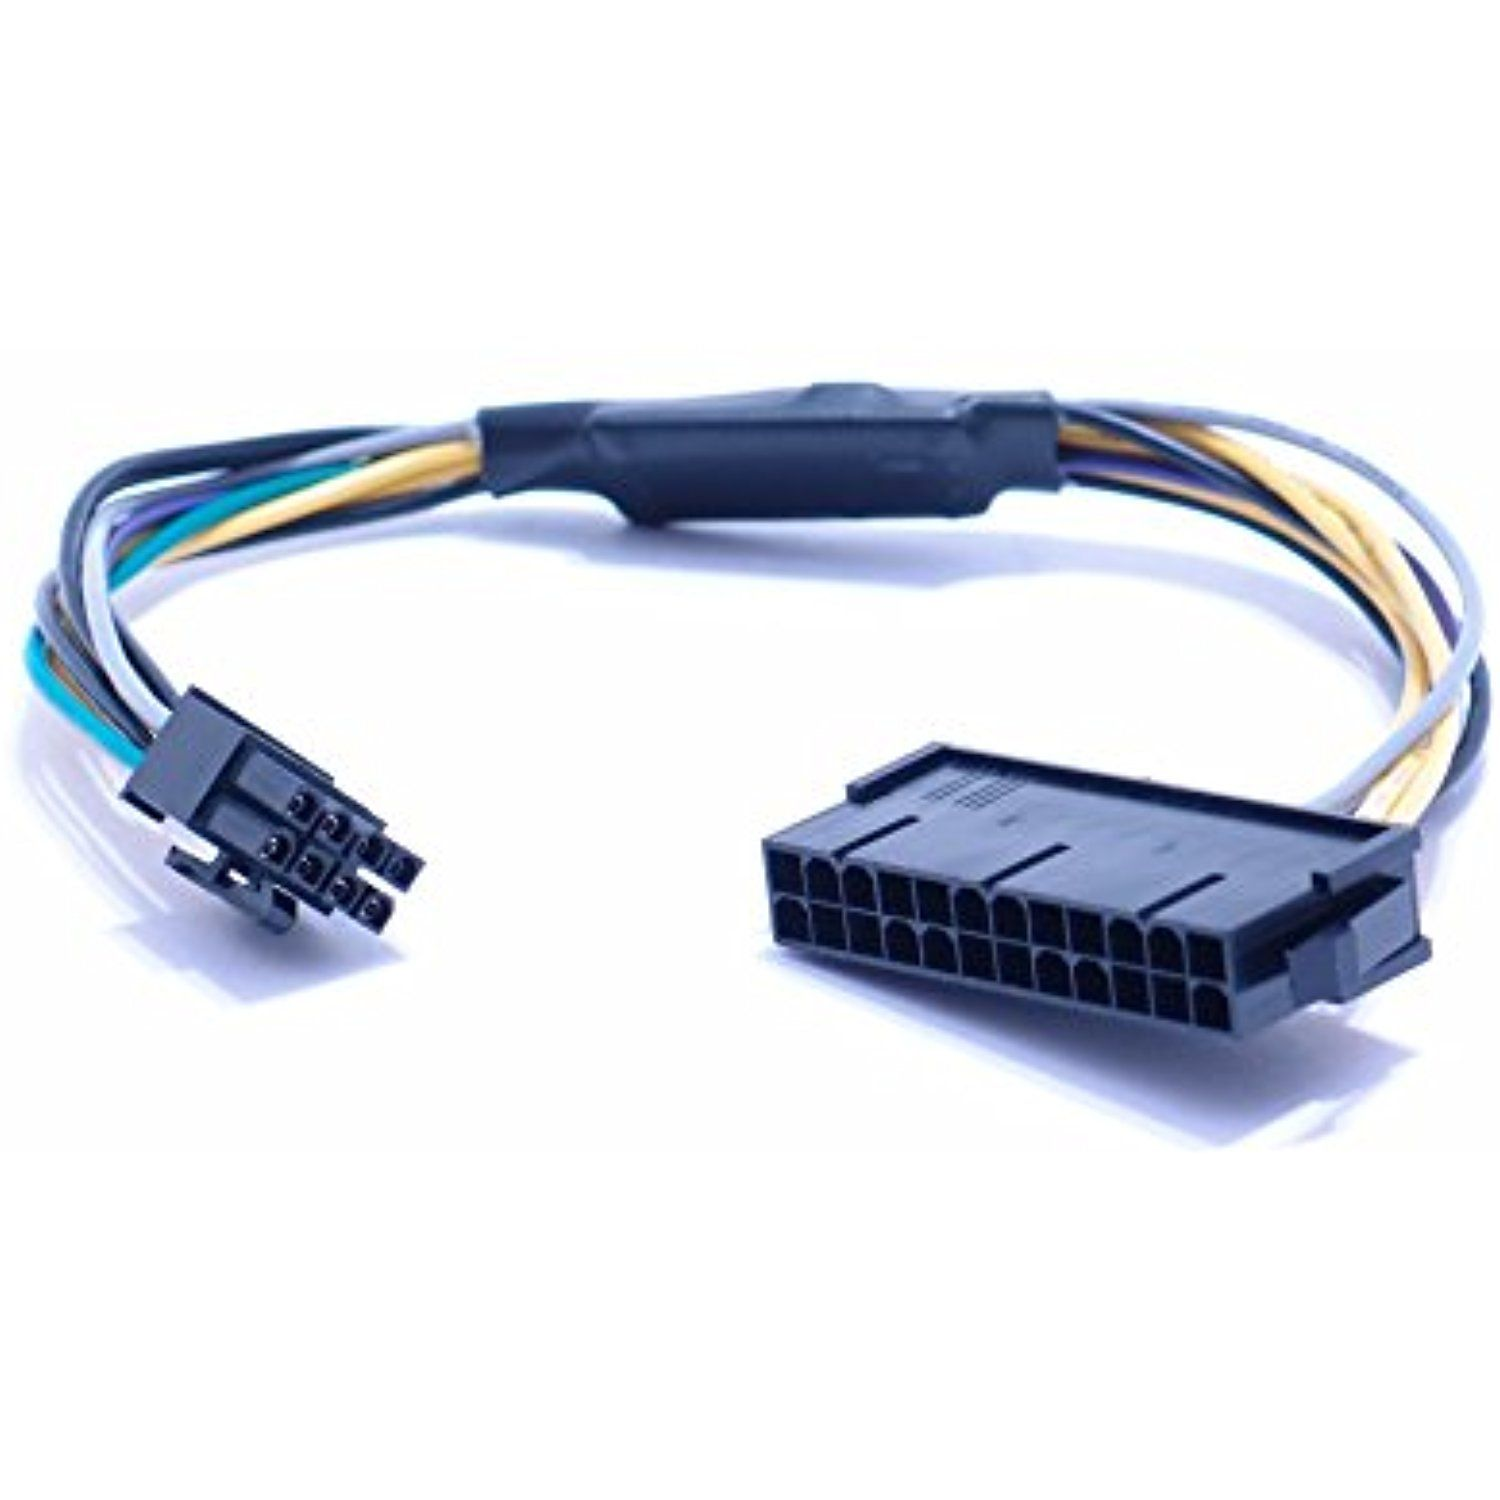 Must Have Gadgets 24 Pin To 8 Pin Atx Power Supply Adapter Cable For Dell Optiplex 3020 7020 9020 Precision T1700 Learn Must Have Gadgets Atx Dell Optiplex